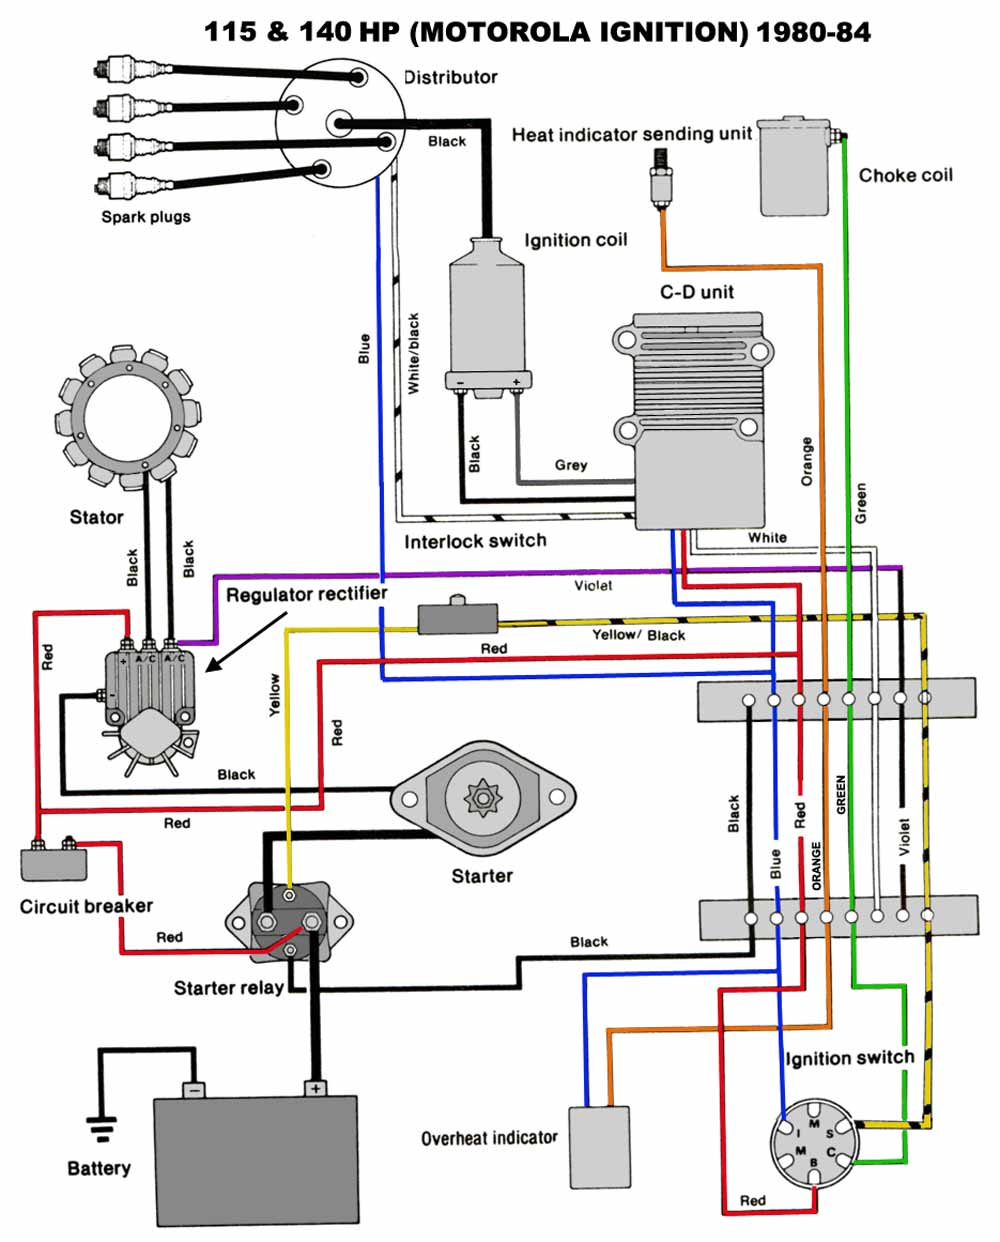 johnson wiring harness diagram free picture schematic wiring40 hp johnson wiring harness diagram free picture wiring diagram johnson fuel system diagram johnson wiring harness diagram free picture schematic